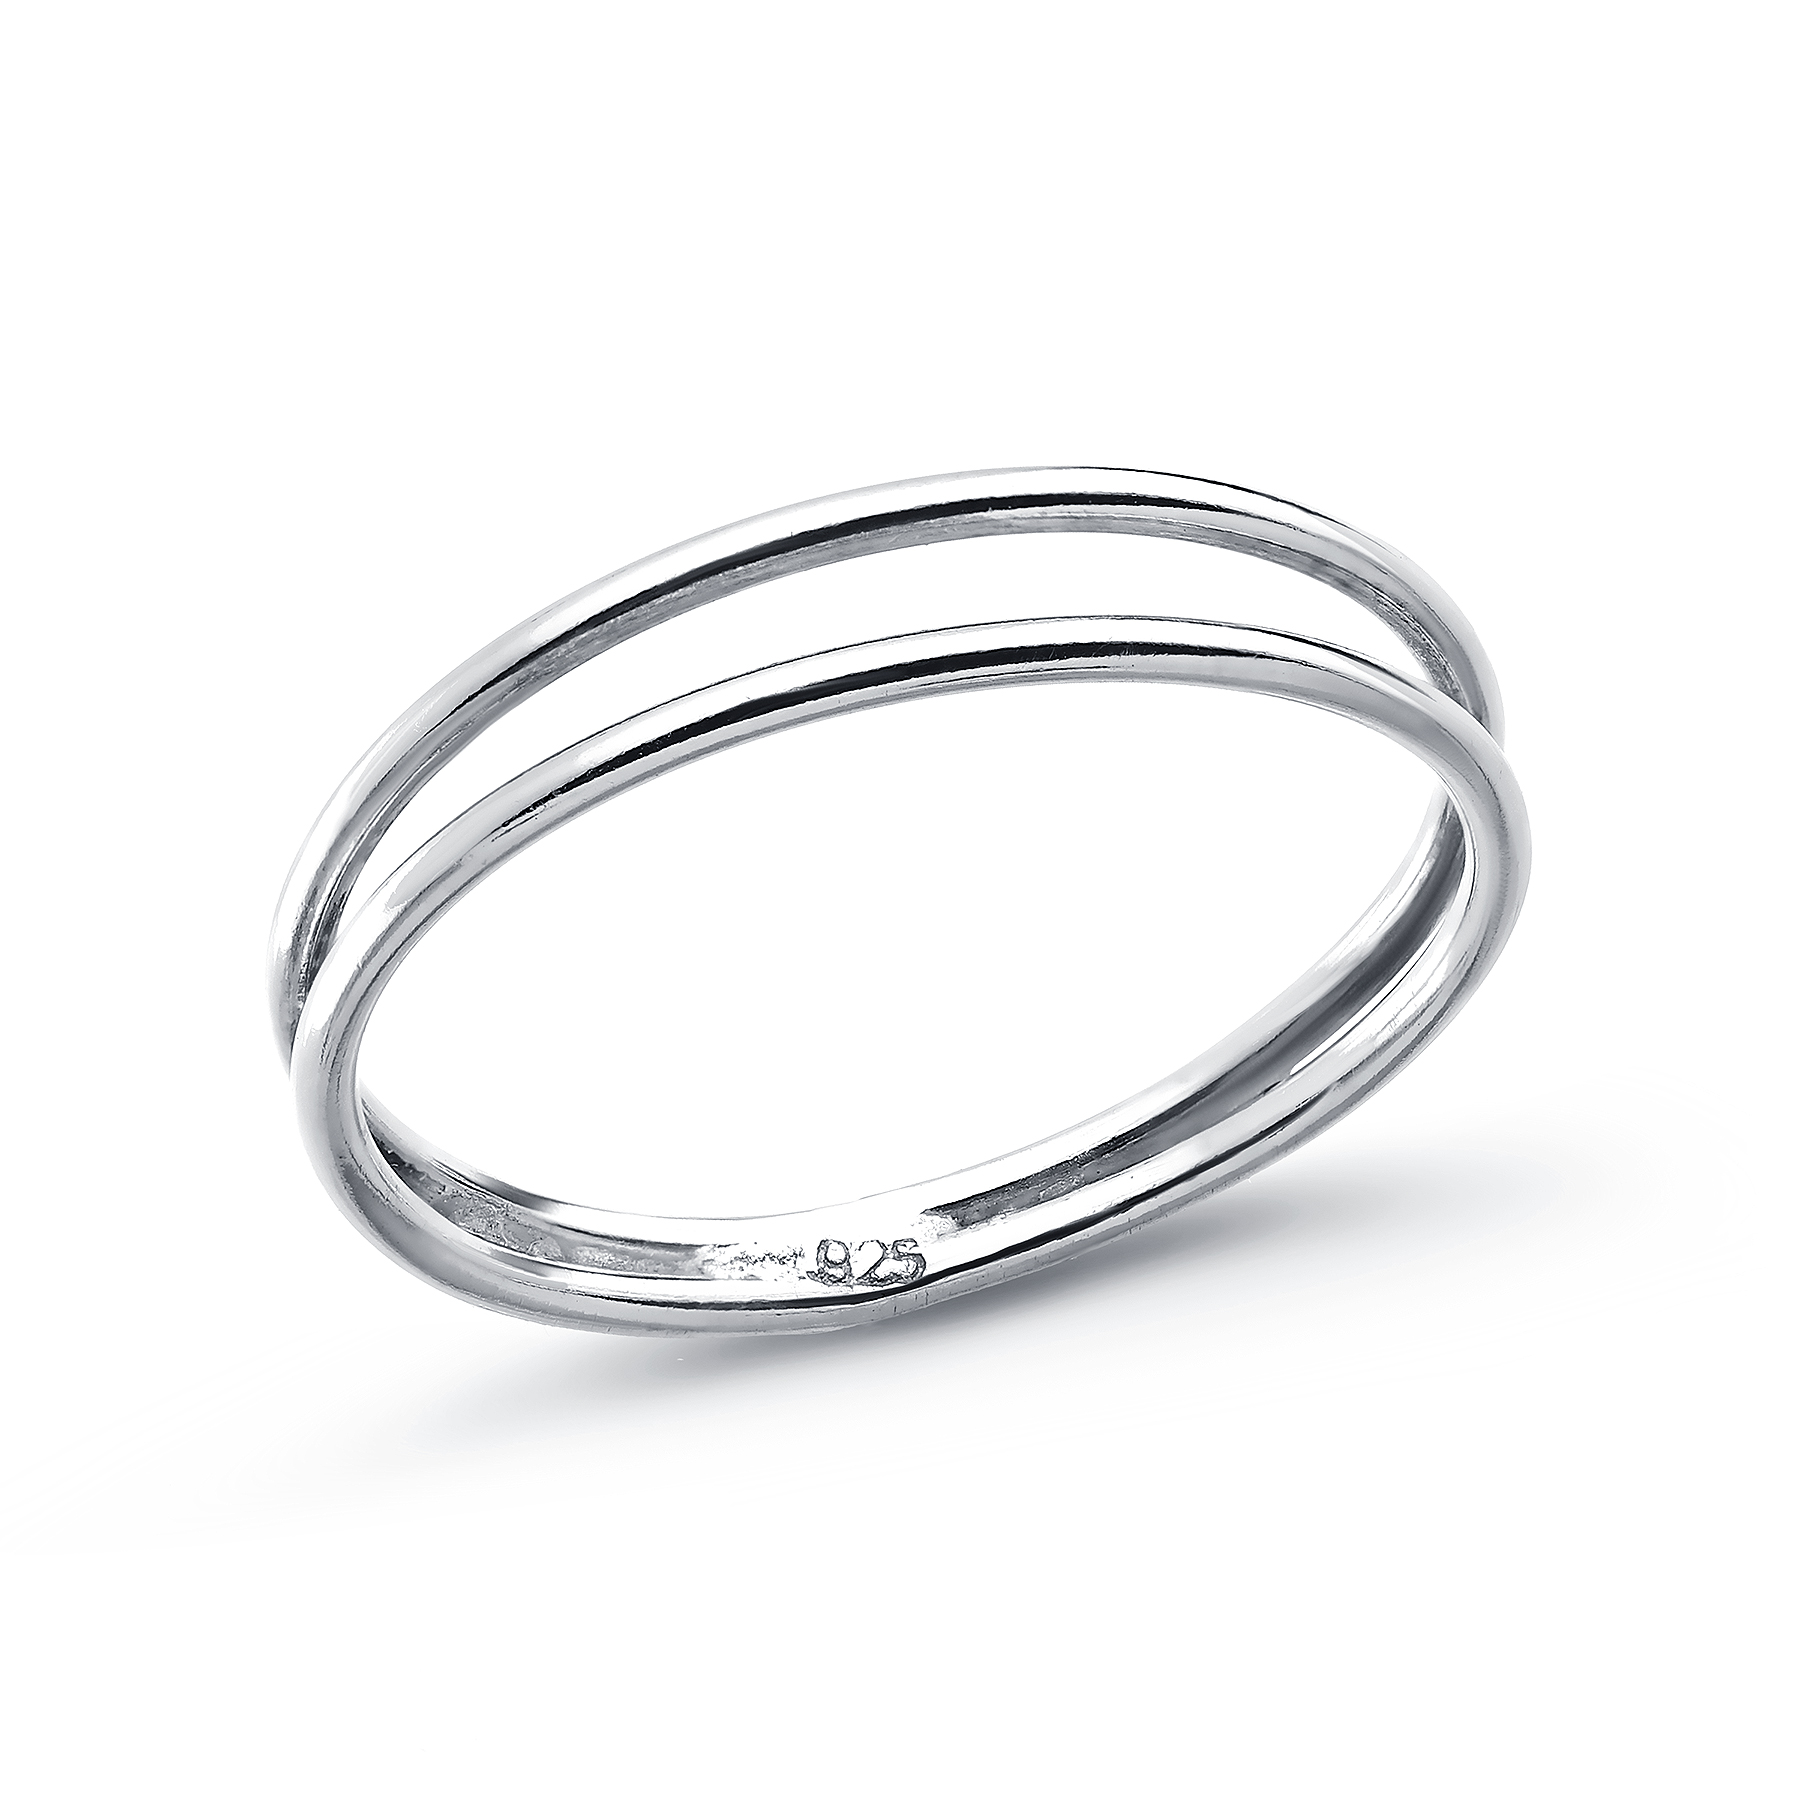 706-19191 - 925 Sterling Silver Ring